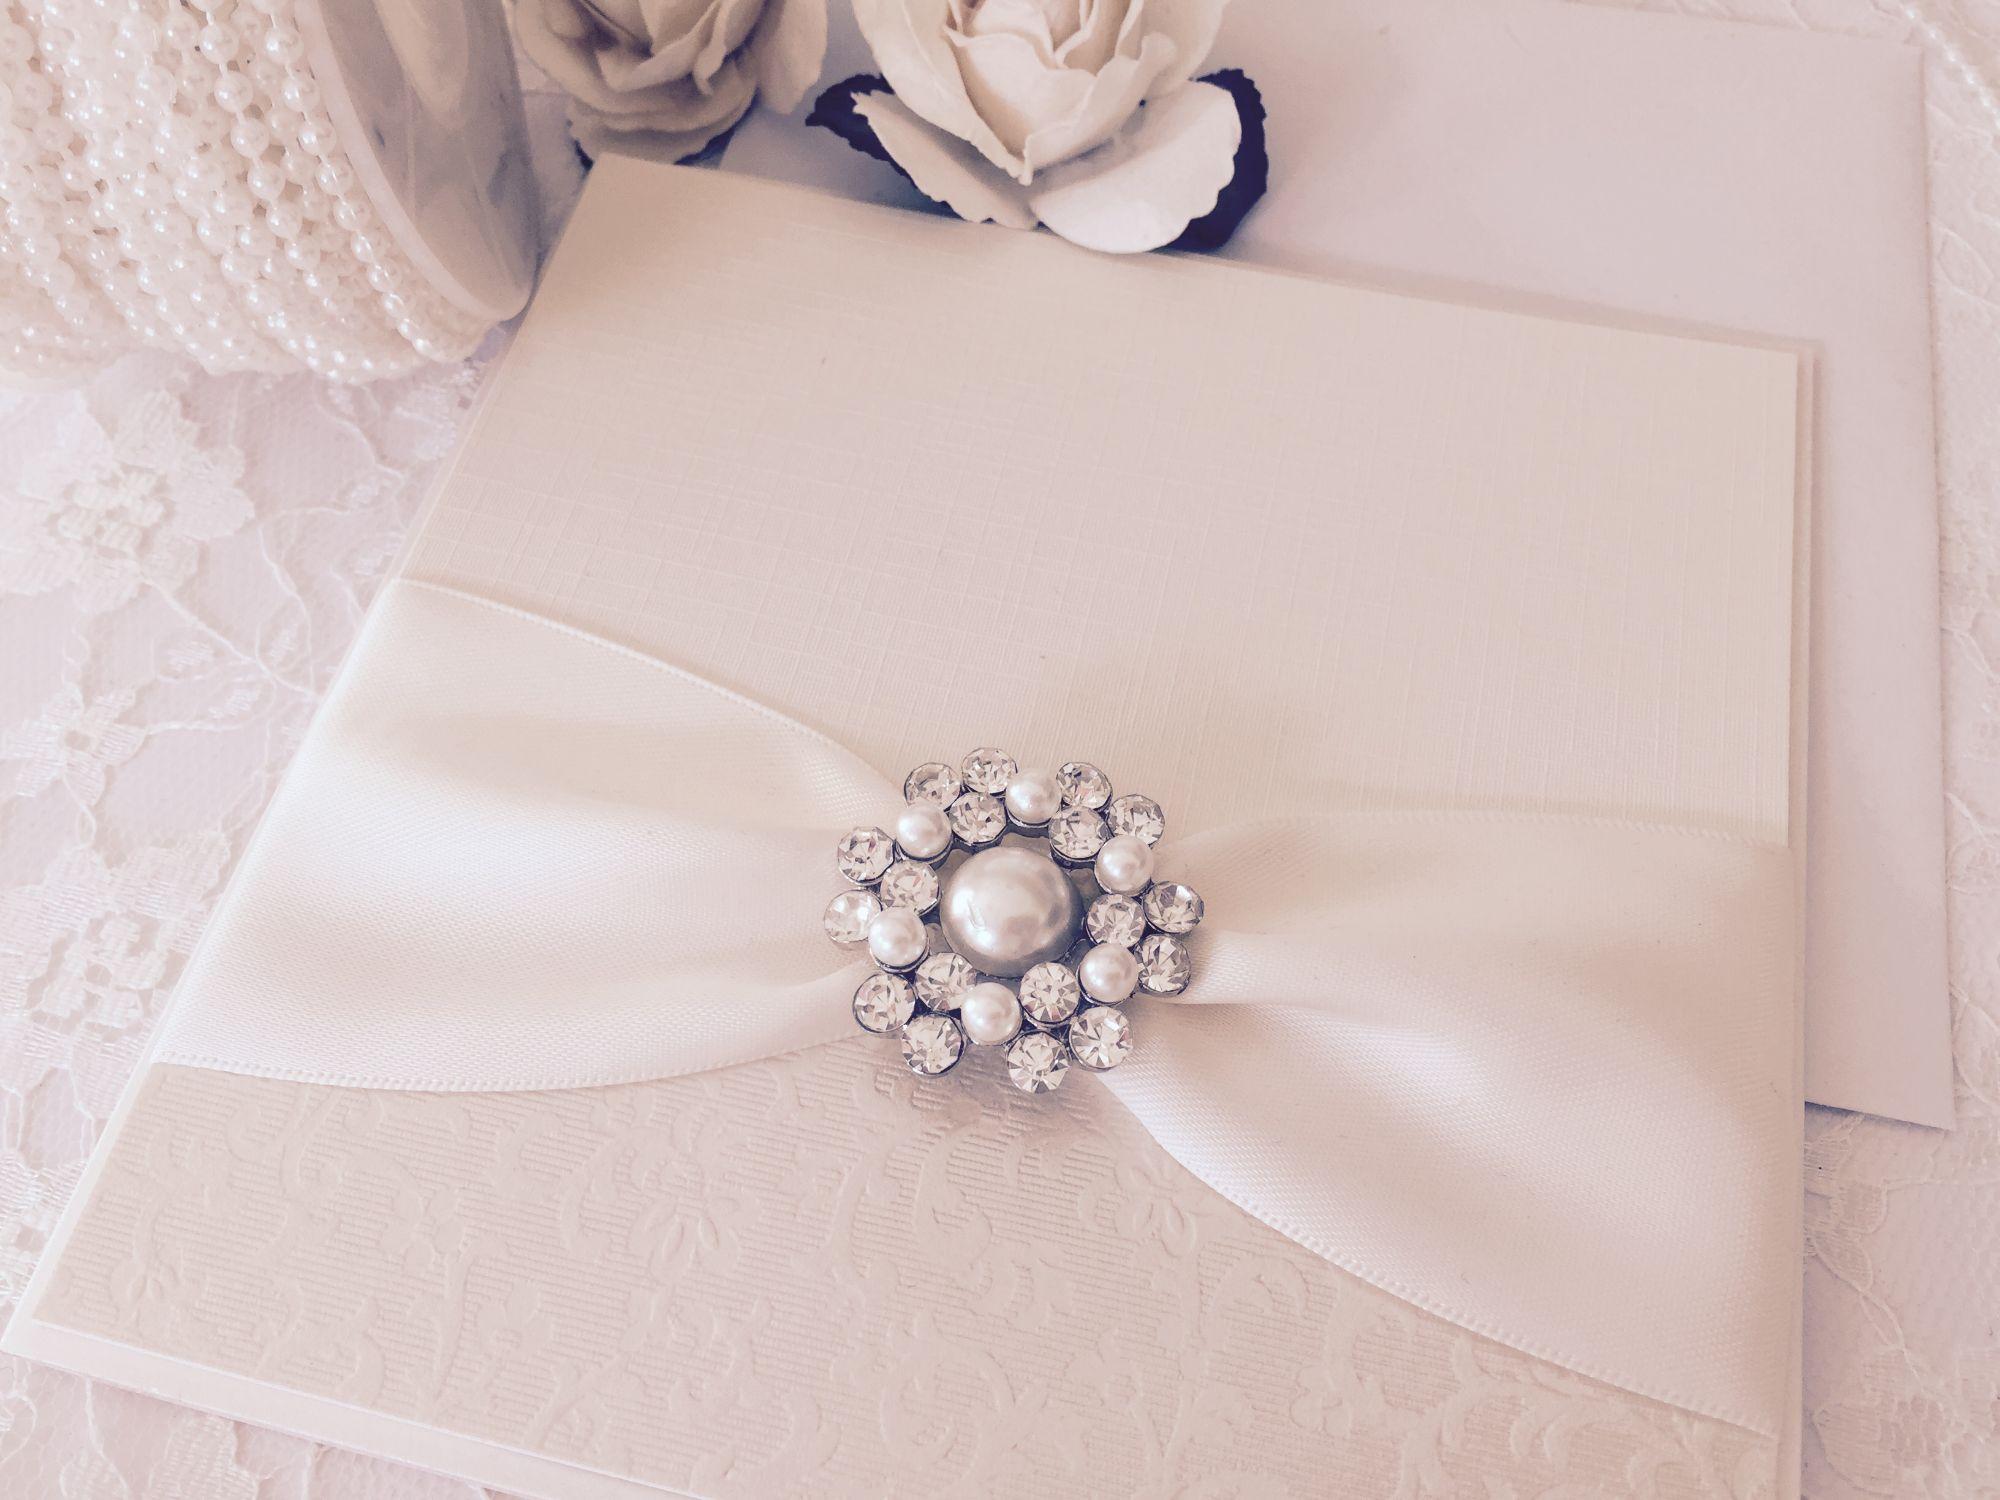 Elegant pearl brooch invitation in ivory